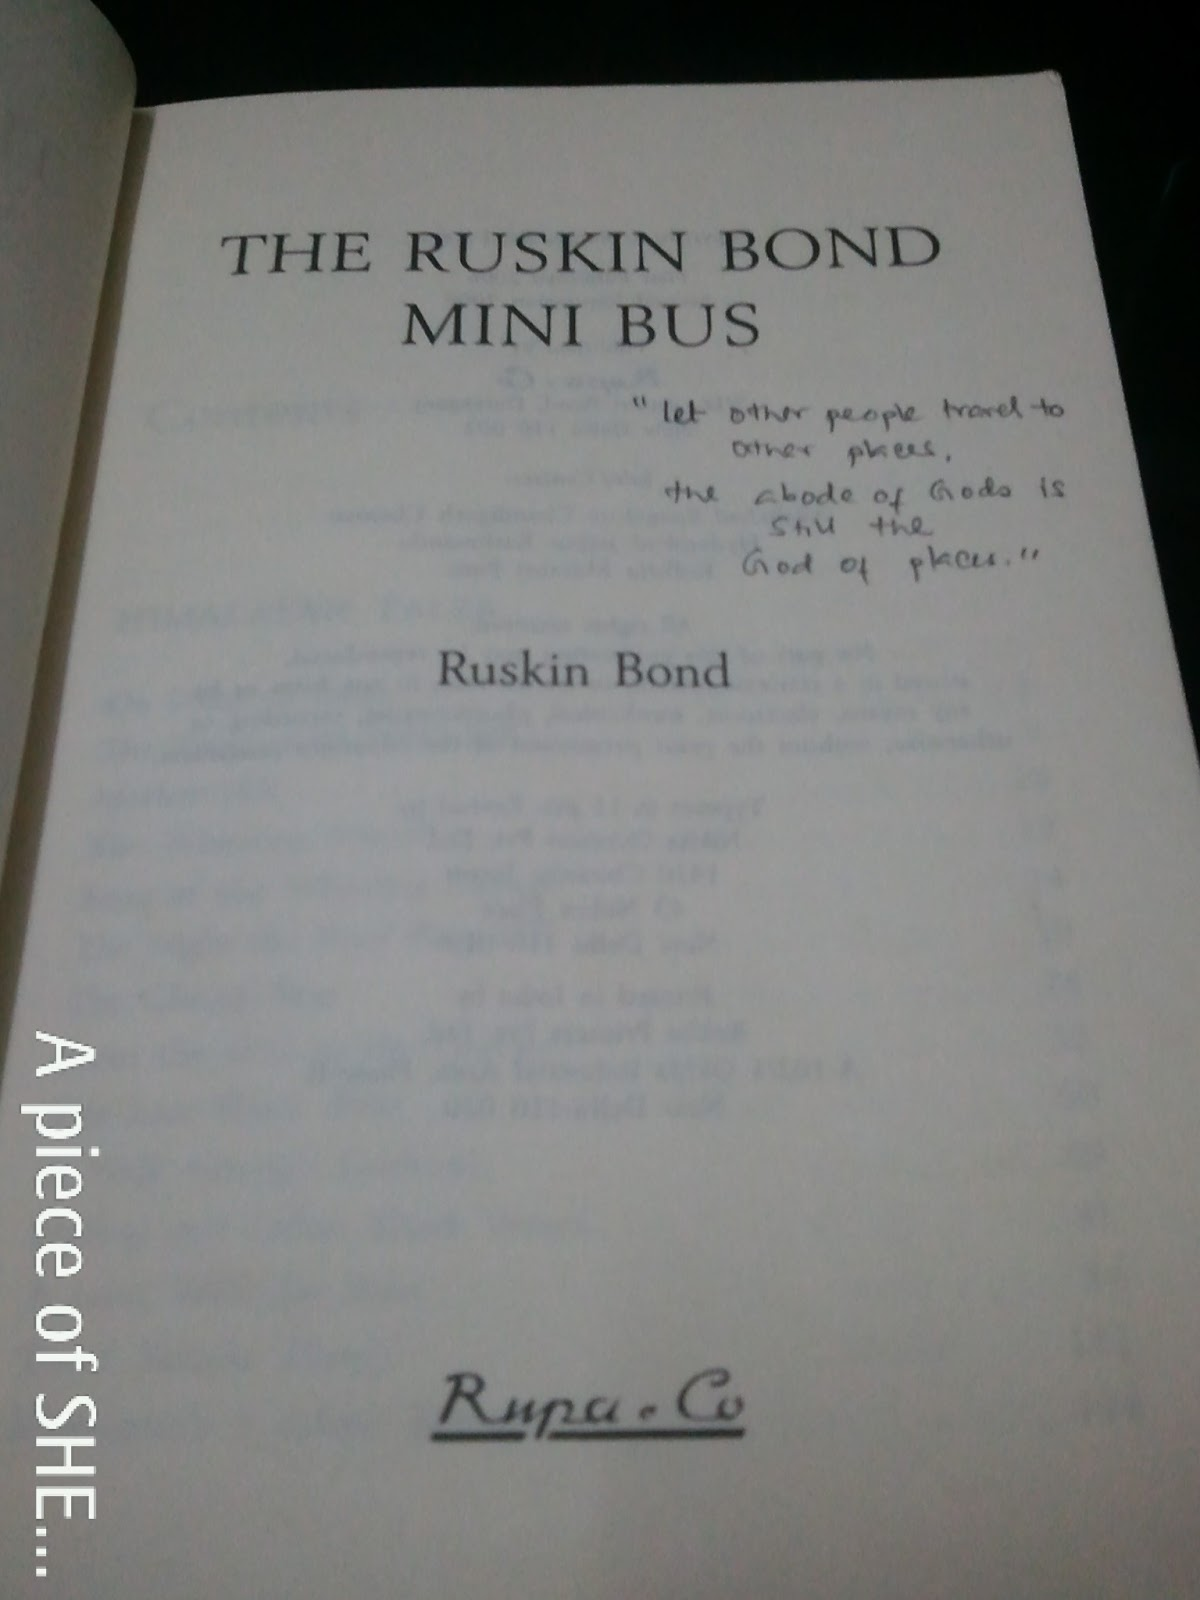 essay on ruskin bond Free essay: life and career ruskin bond was born in a military hospital in [kasauli] to edith clerke and aubrey bond his siblings were ellen and william.